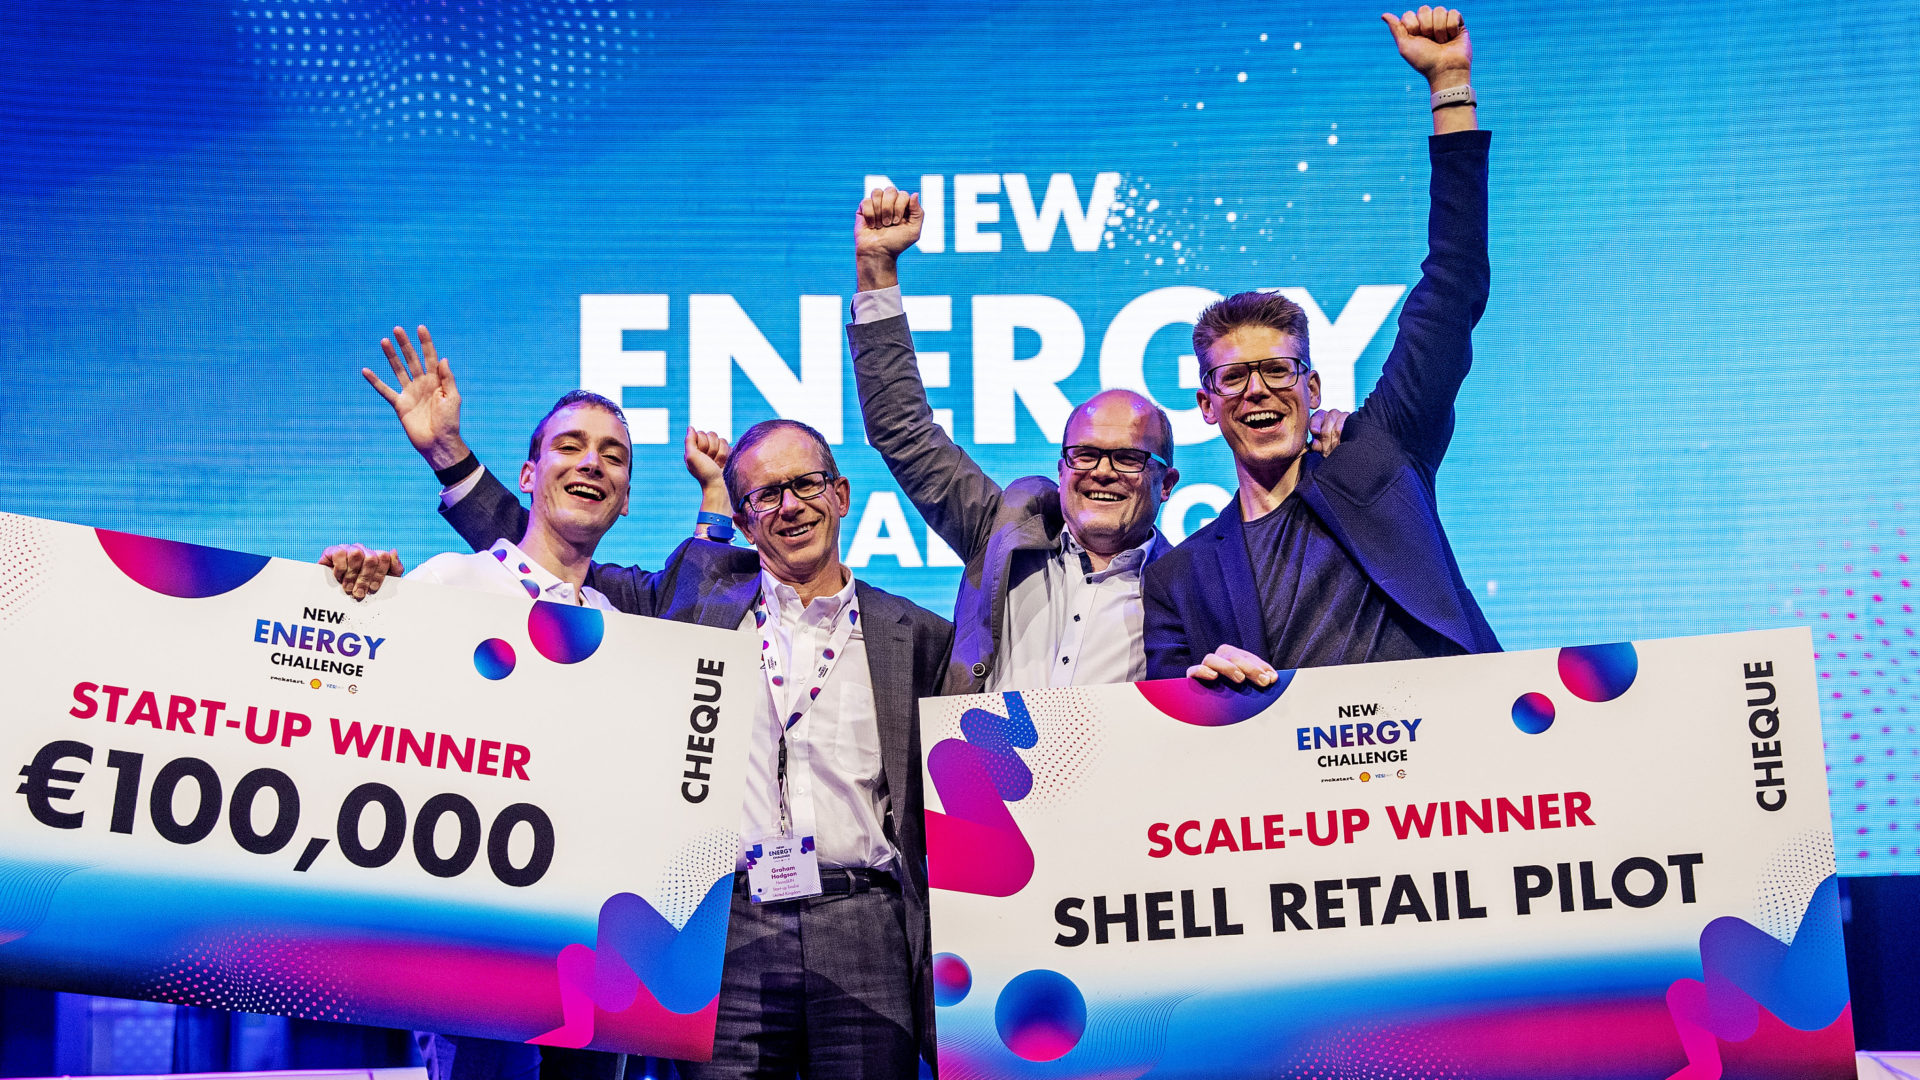 Shell Game Changer Winners